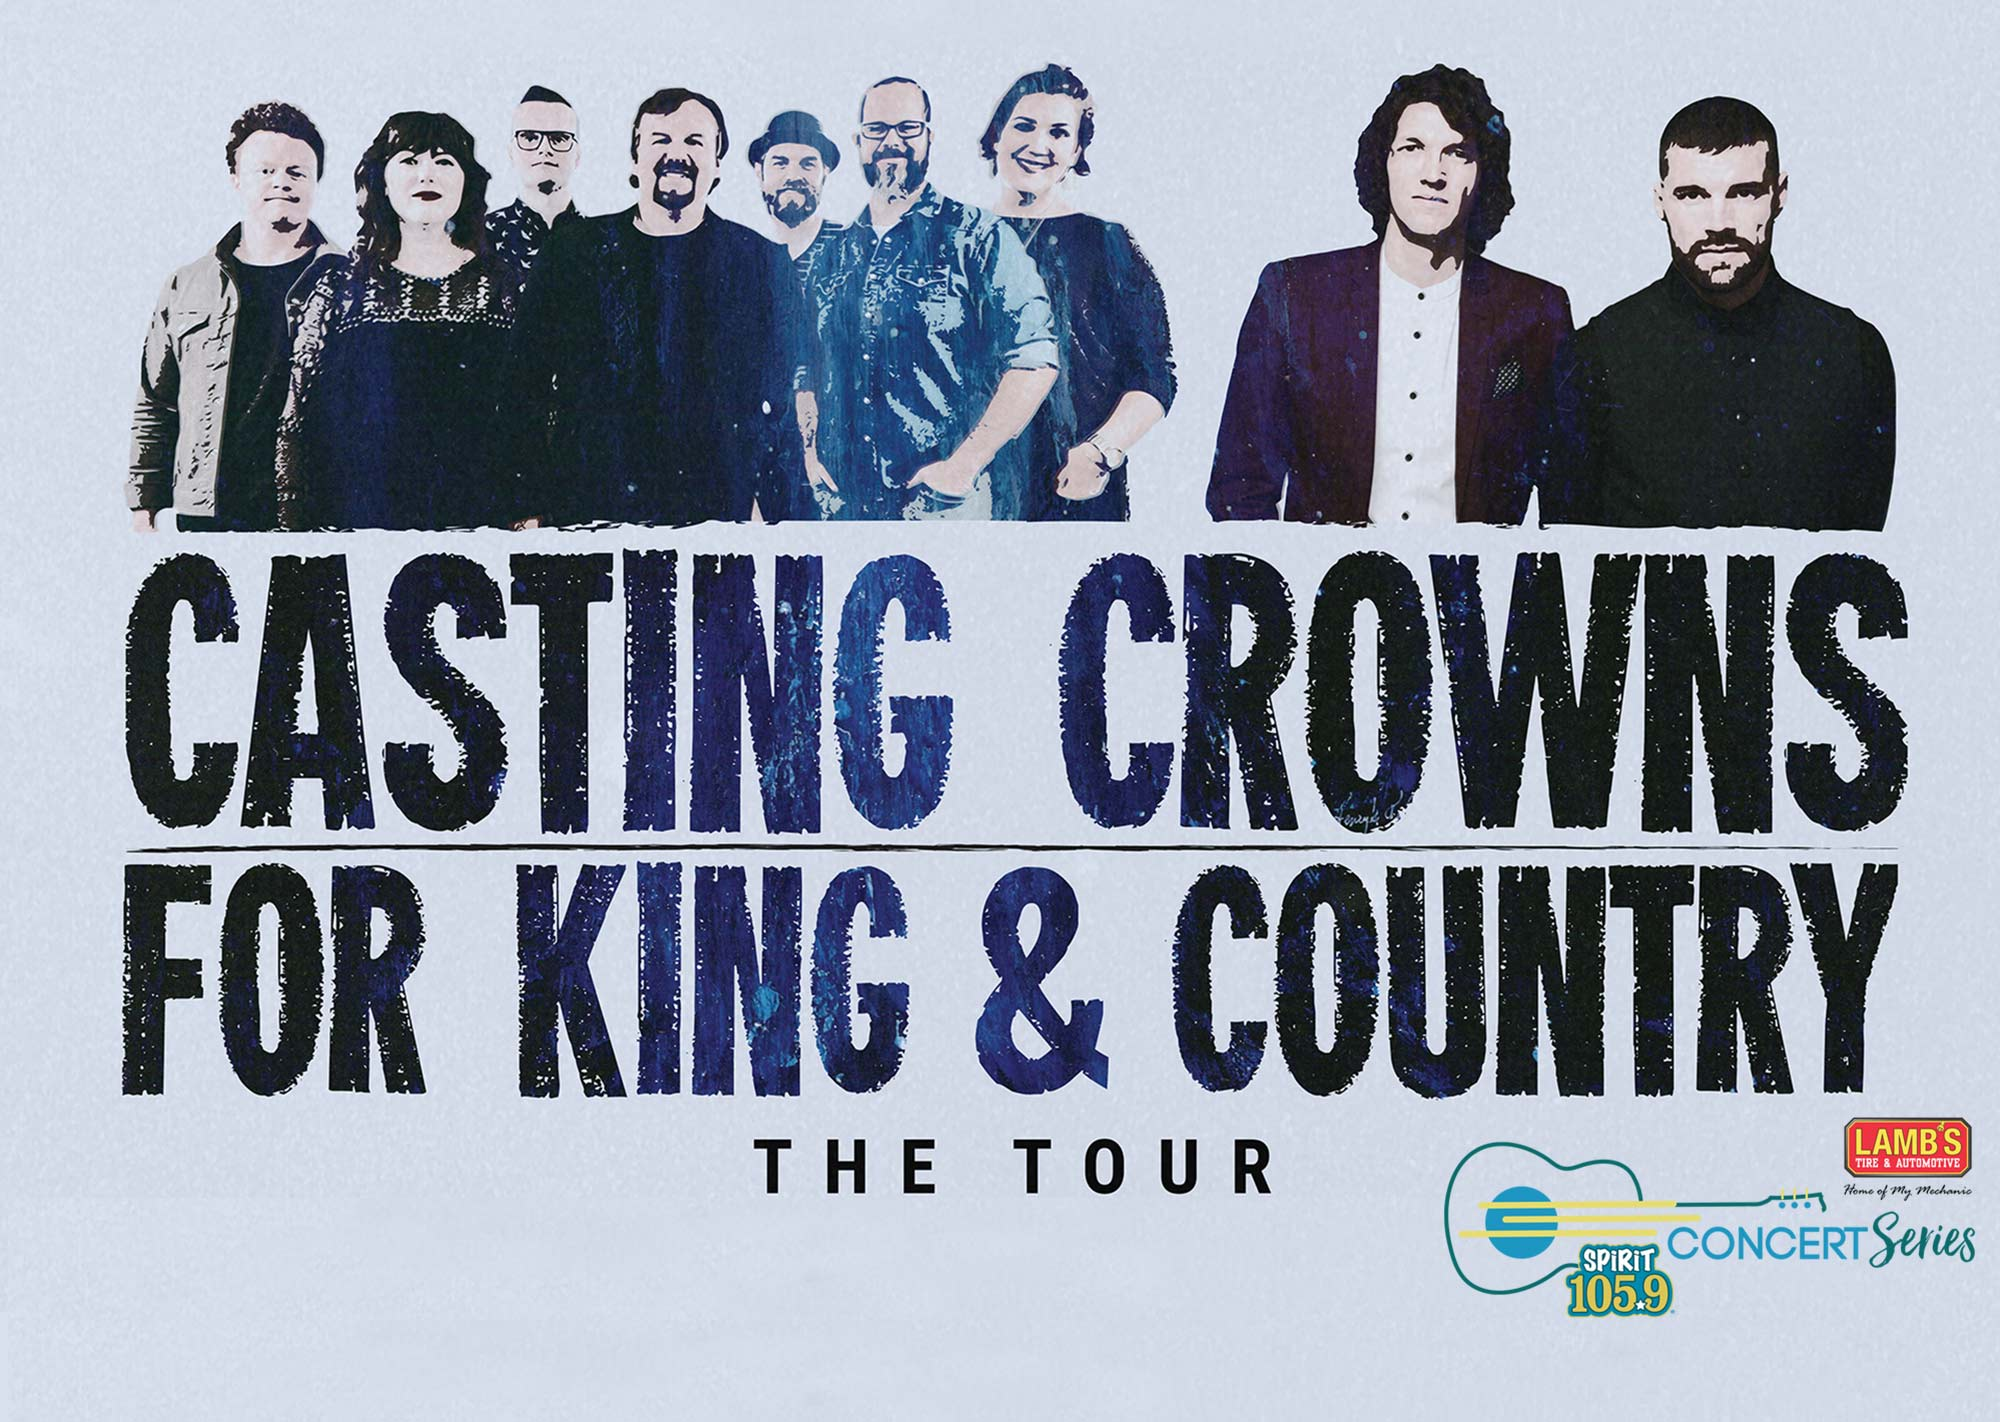 Casting-Crowns-+-for-K&C_2000x1422.jpg